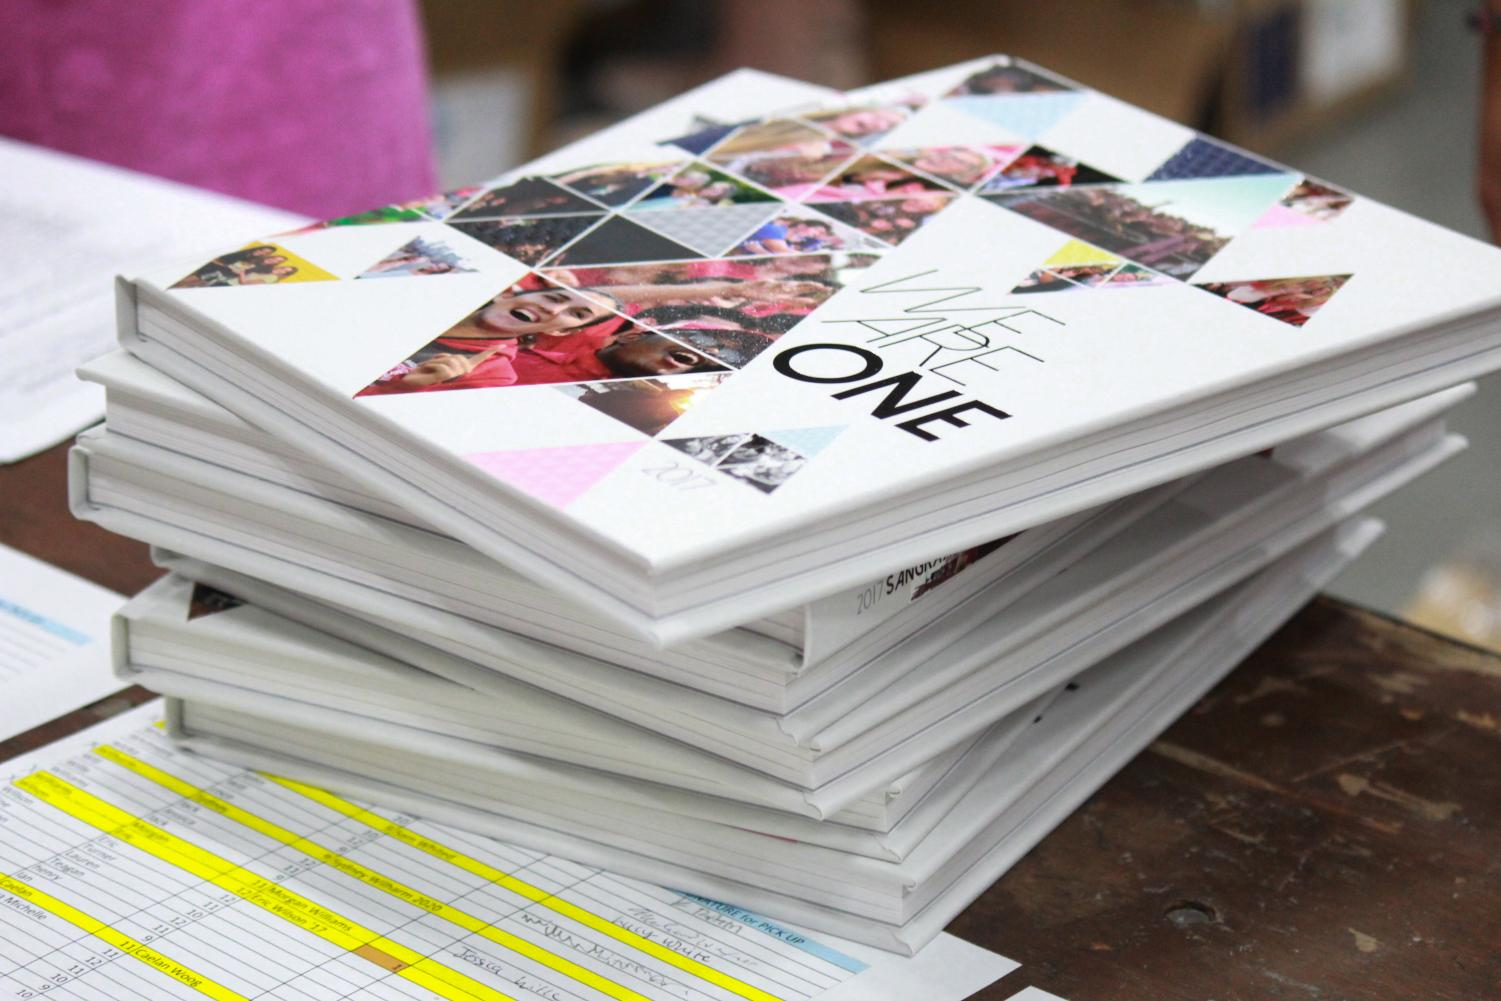 There are still 45 copies of last year's yearbook that were never sold.